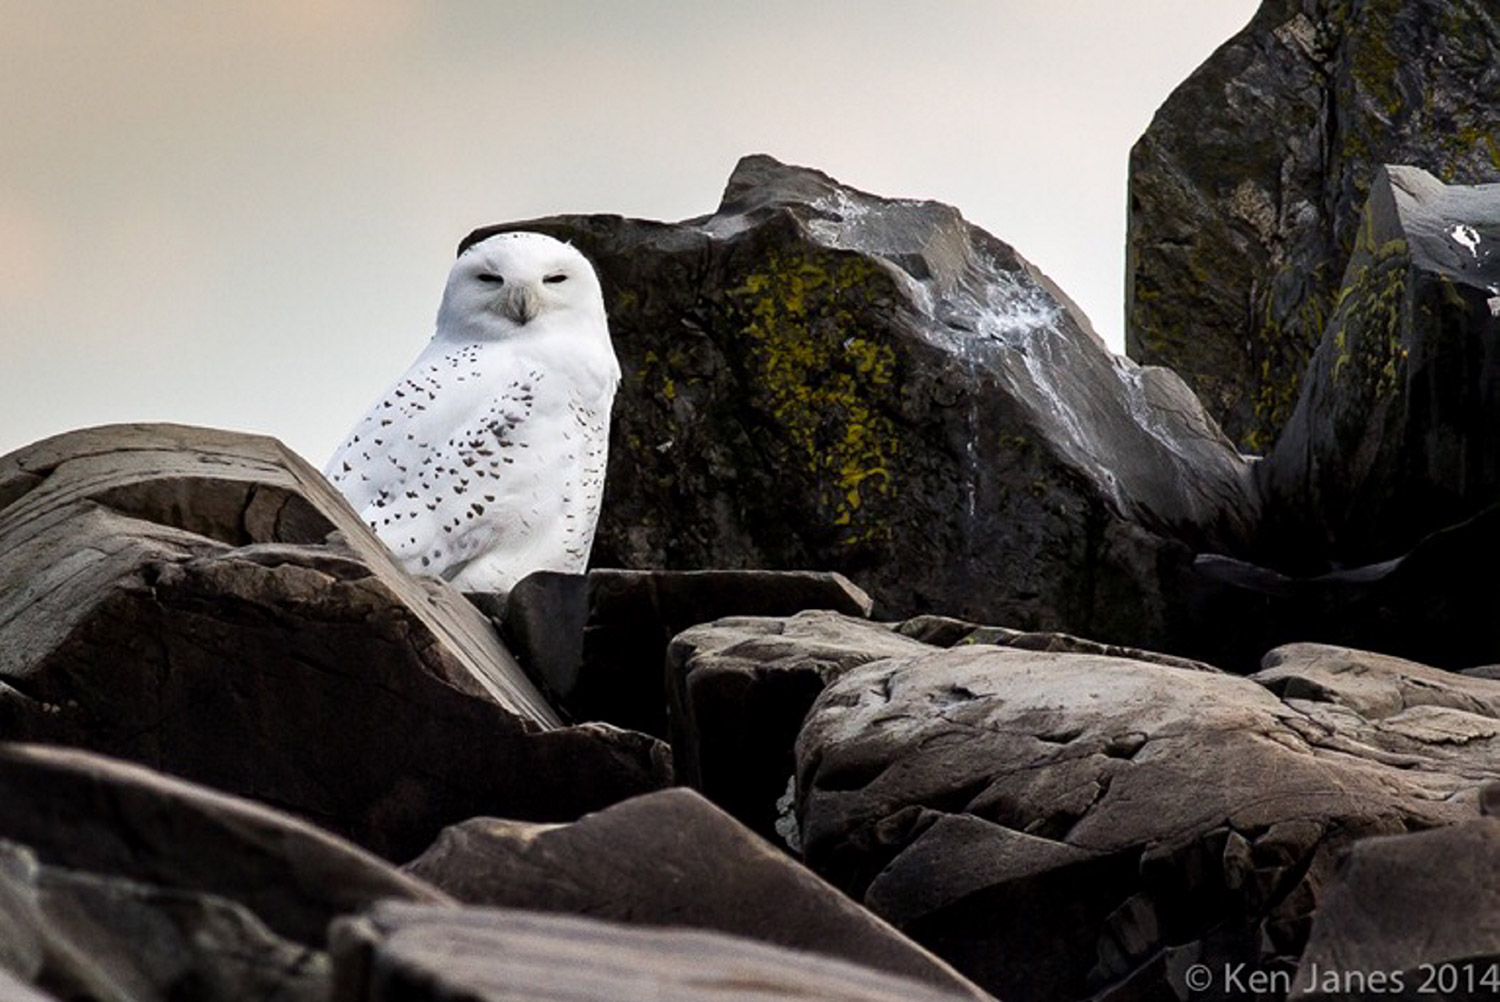 Dr. Ken Janes took this photo on November 20, early in the morning, on Strawberry Island, Kennebunk Beach.  He believes it is an adult Snowy Owl, the first seen this season.  Maybe it was escaping the snow in Buffalo?